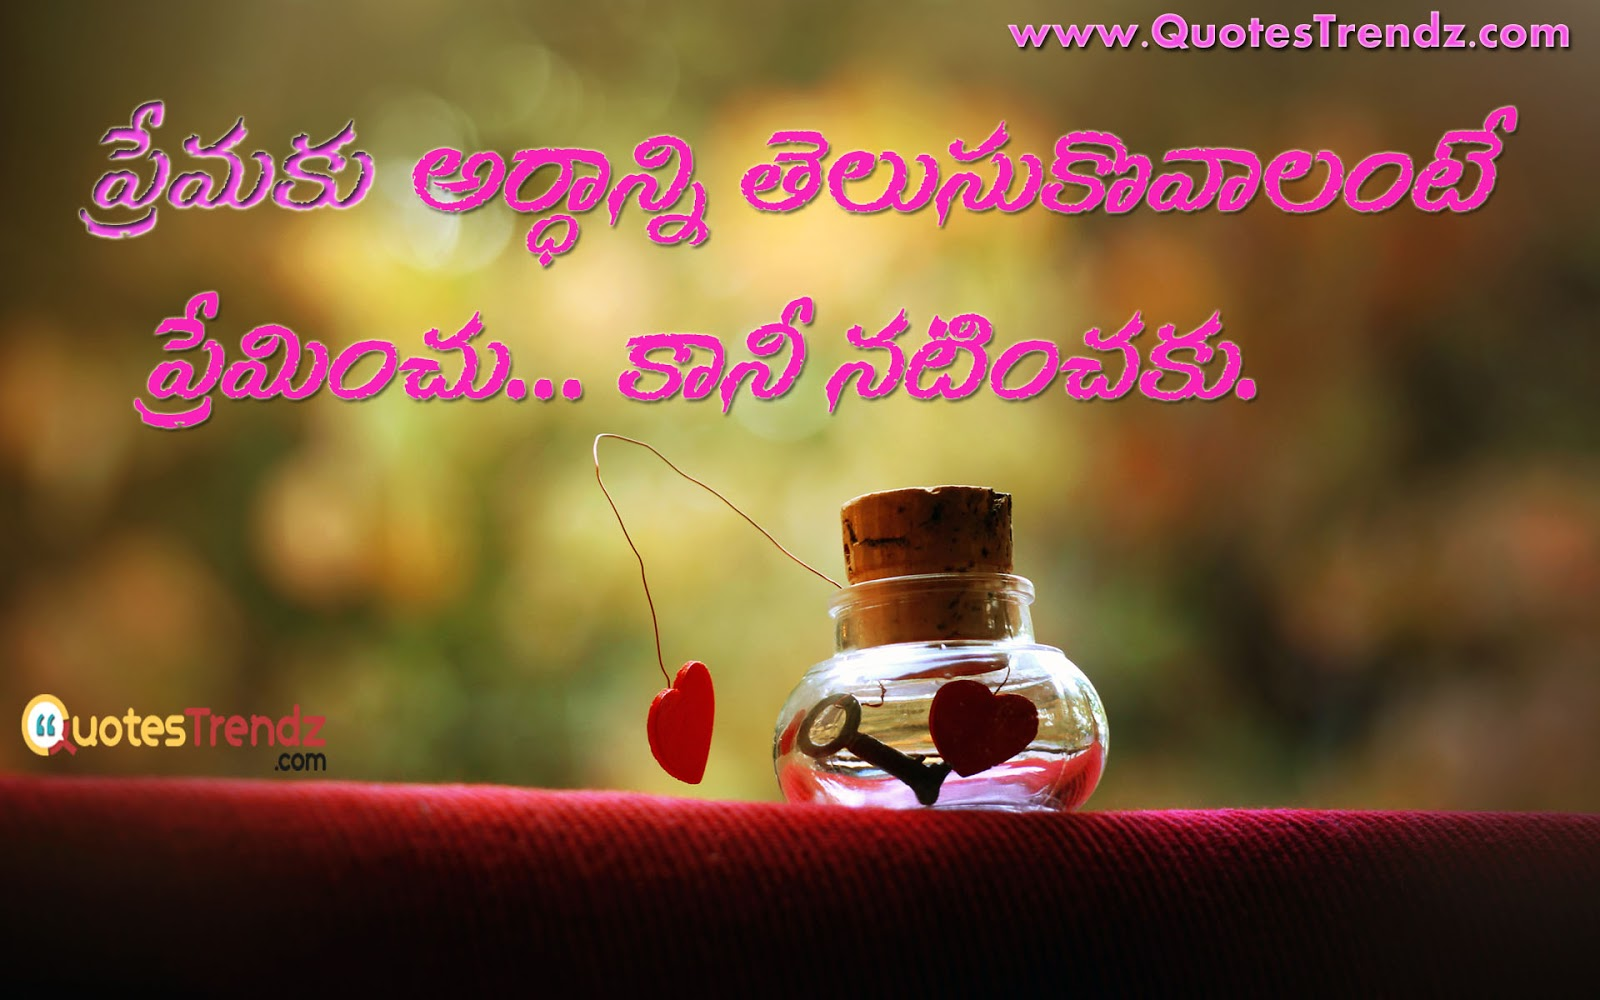 Telugu Love Quotes Impressive Telugu Love Quotes  Quotestrendz